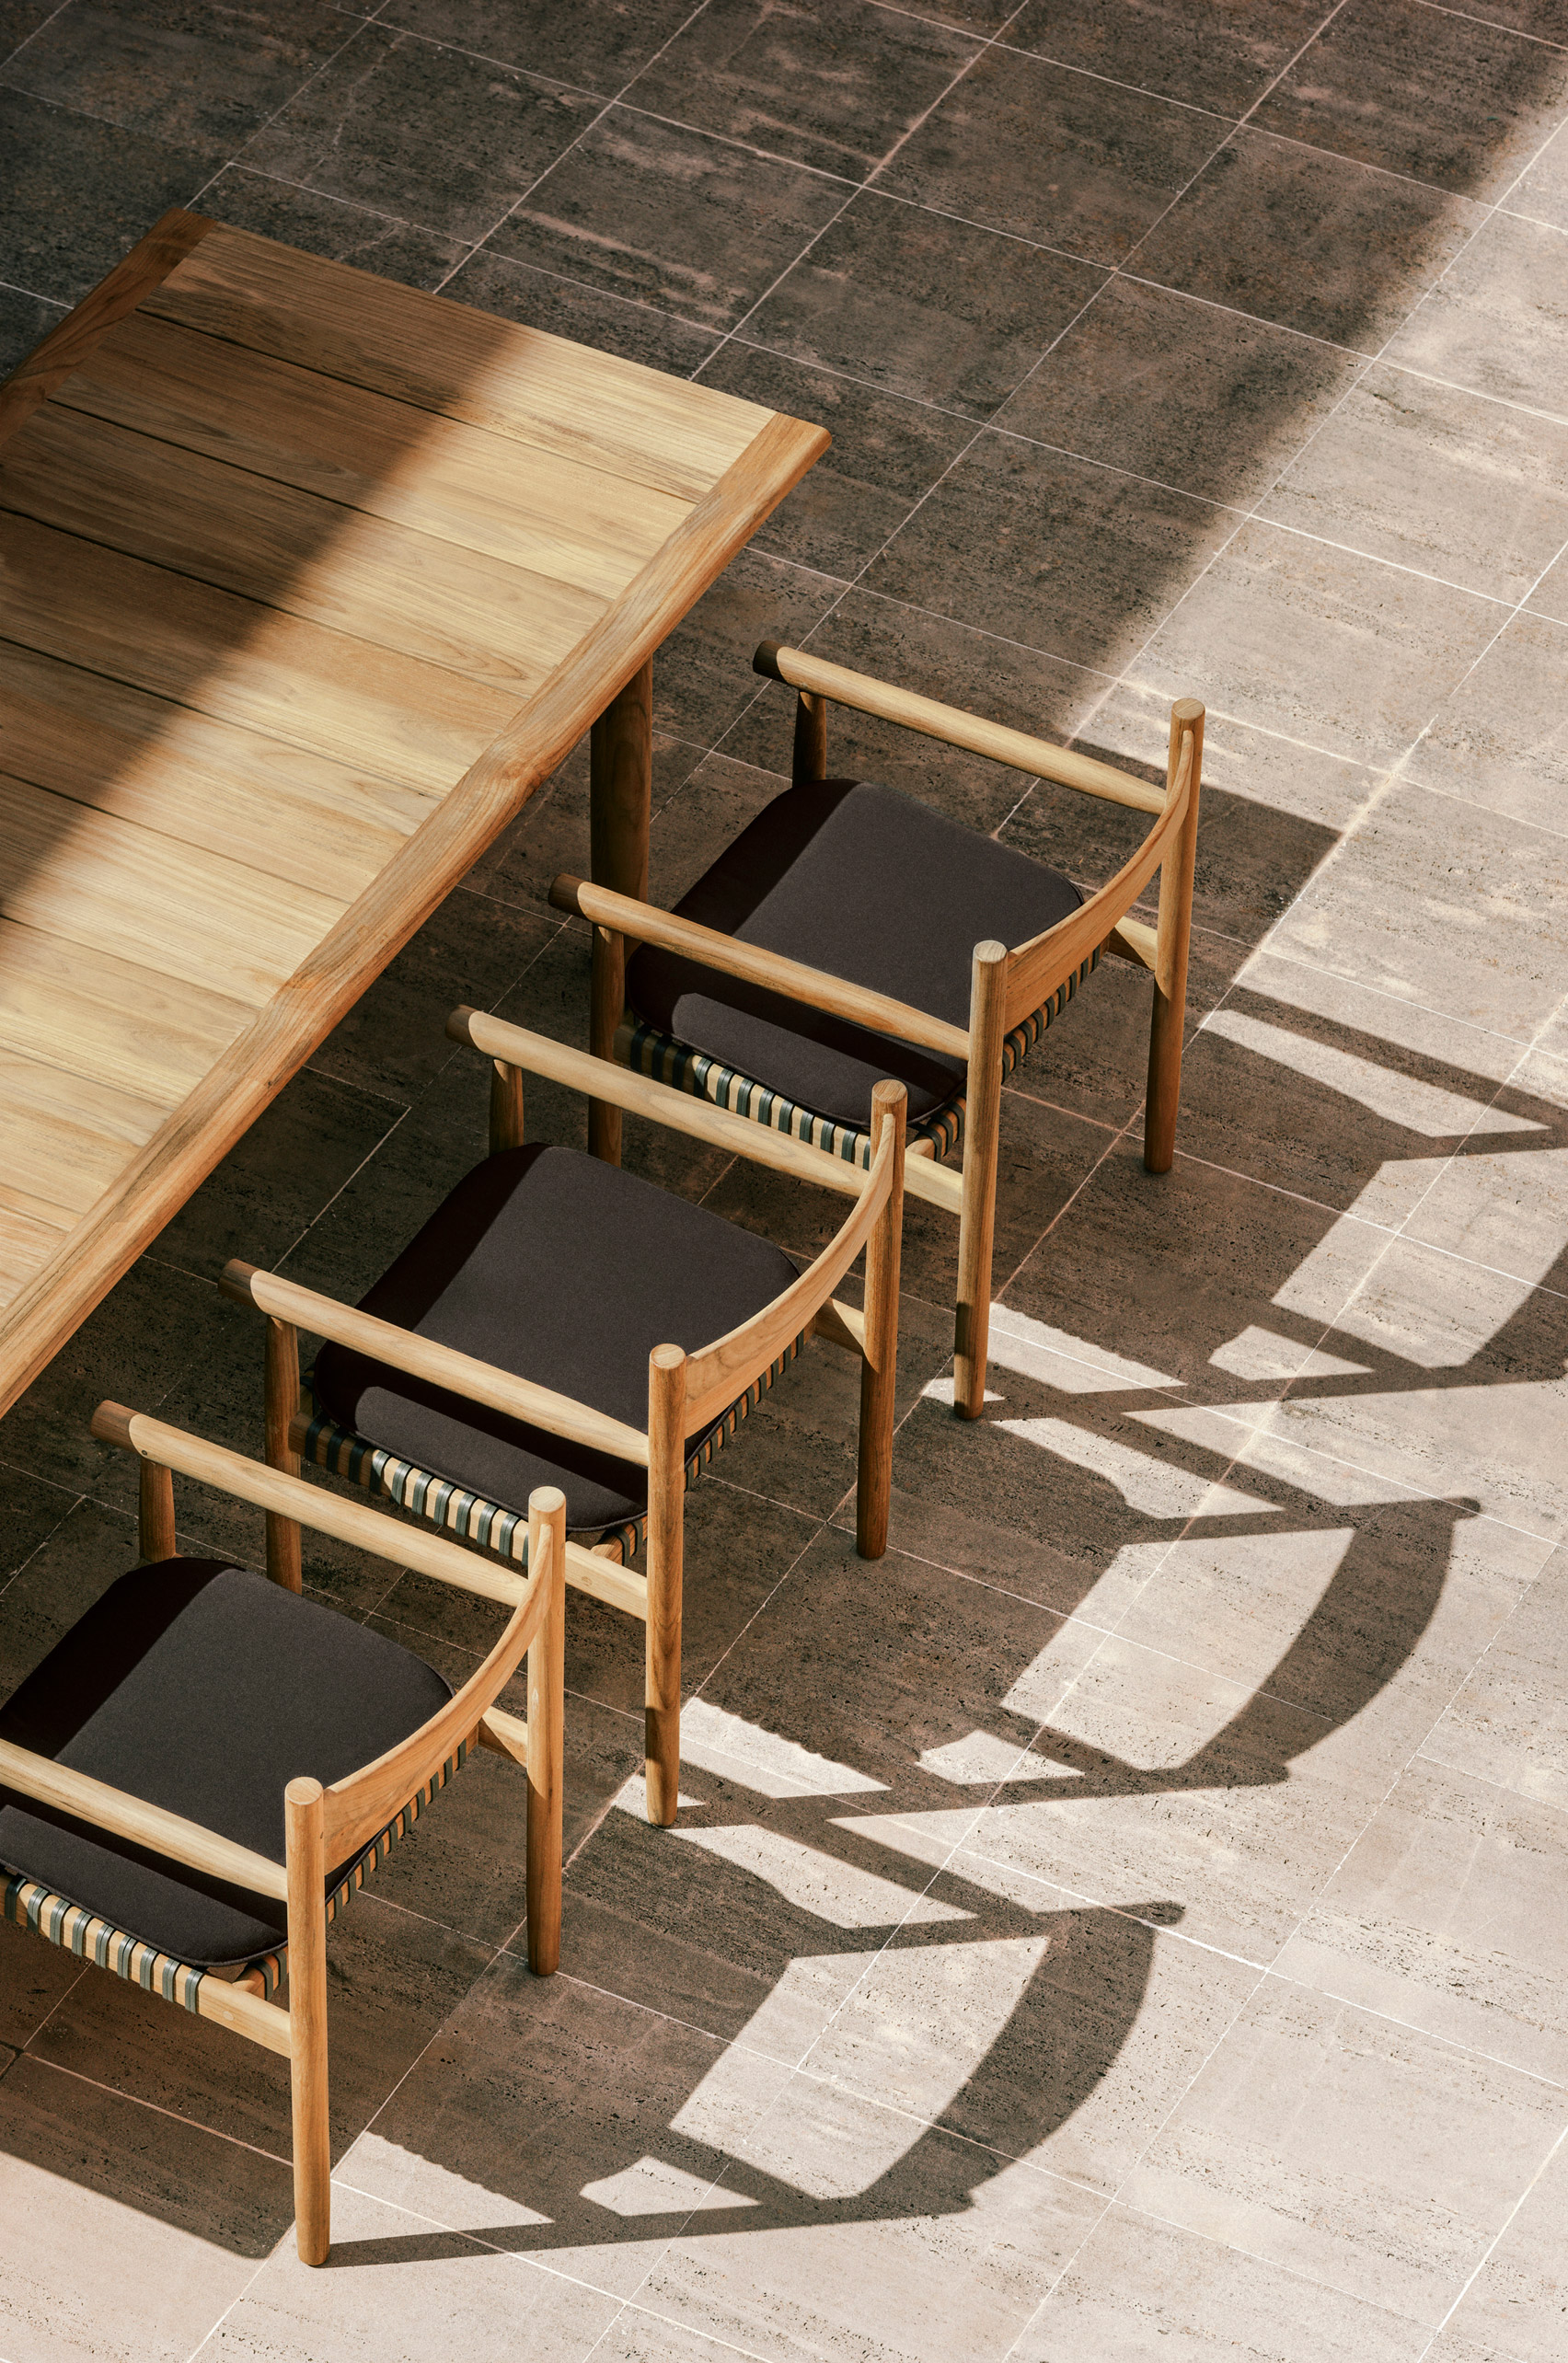 3Novices Barber and Osgerby unveil outdoor furniture